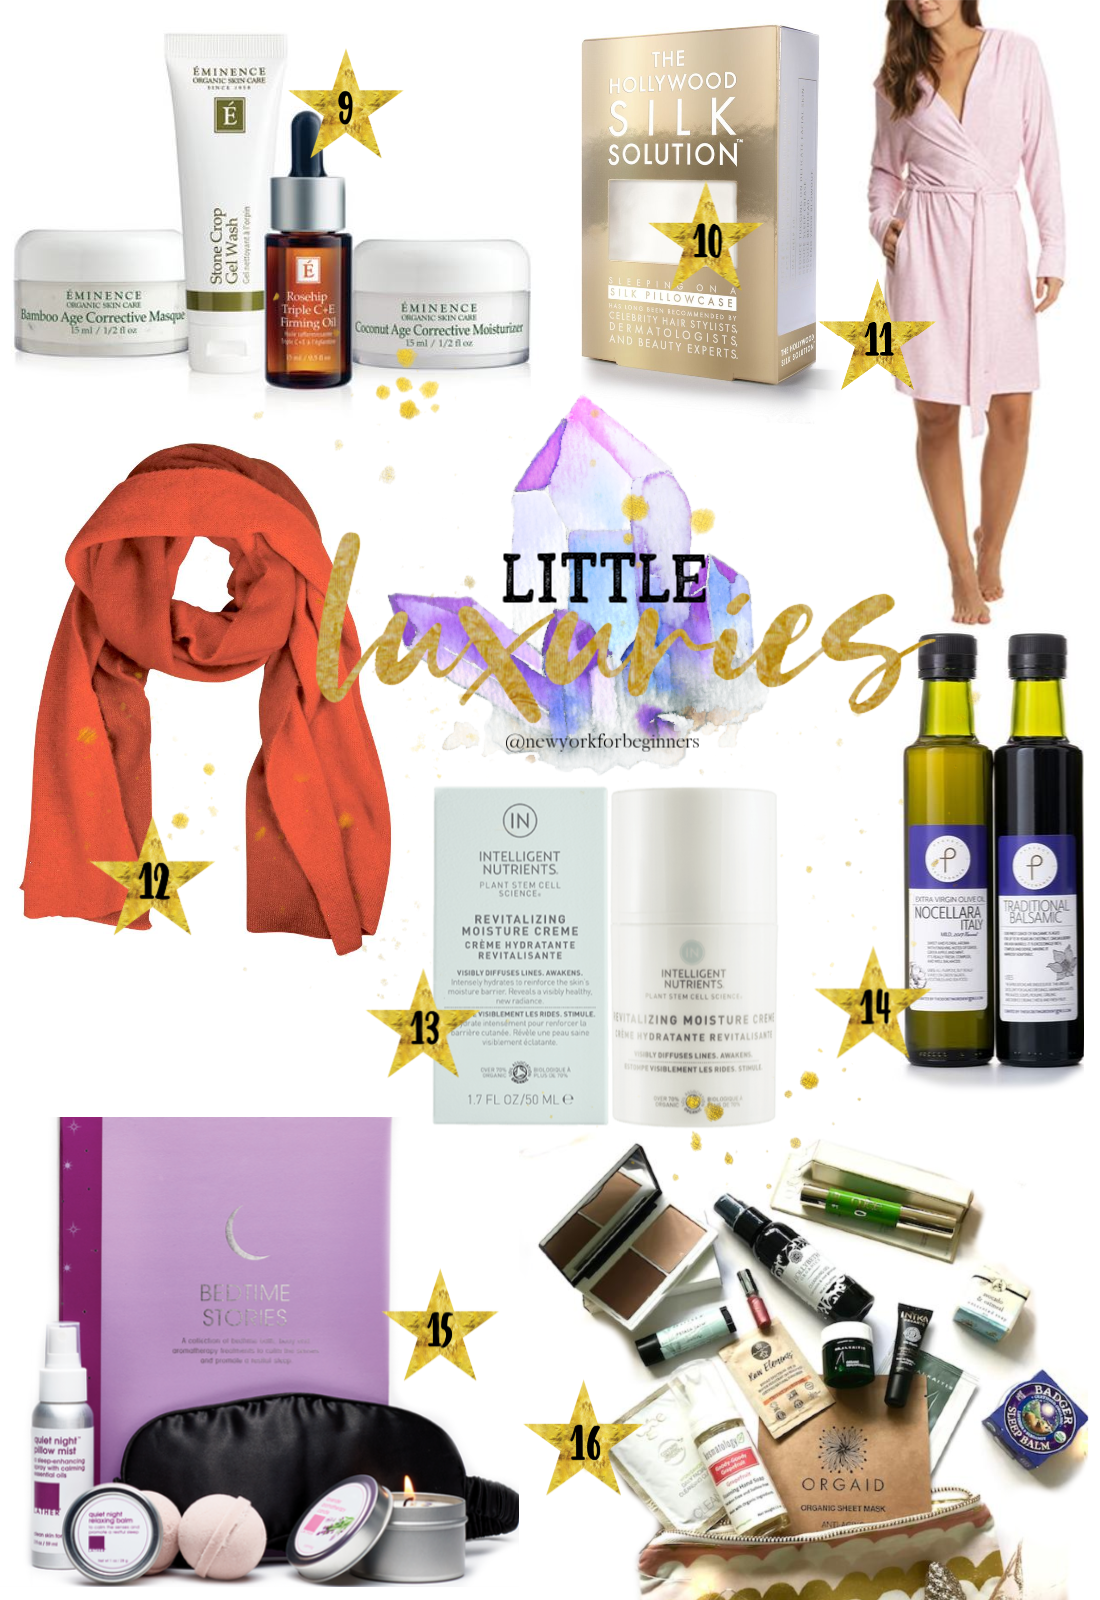 Little Luxuries are Holiday Gifts for a life well-lived